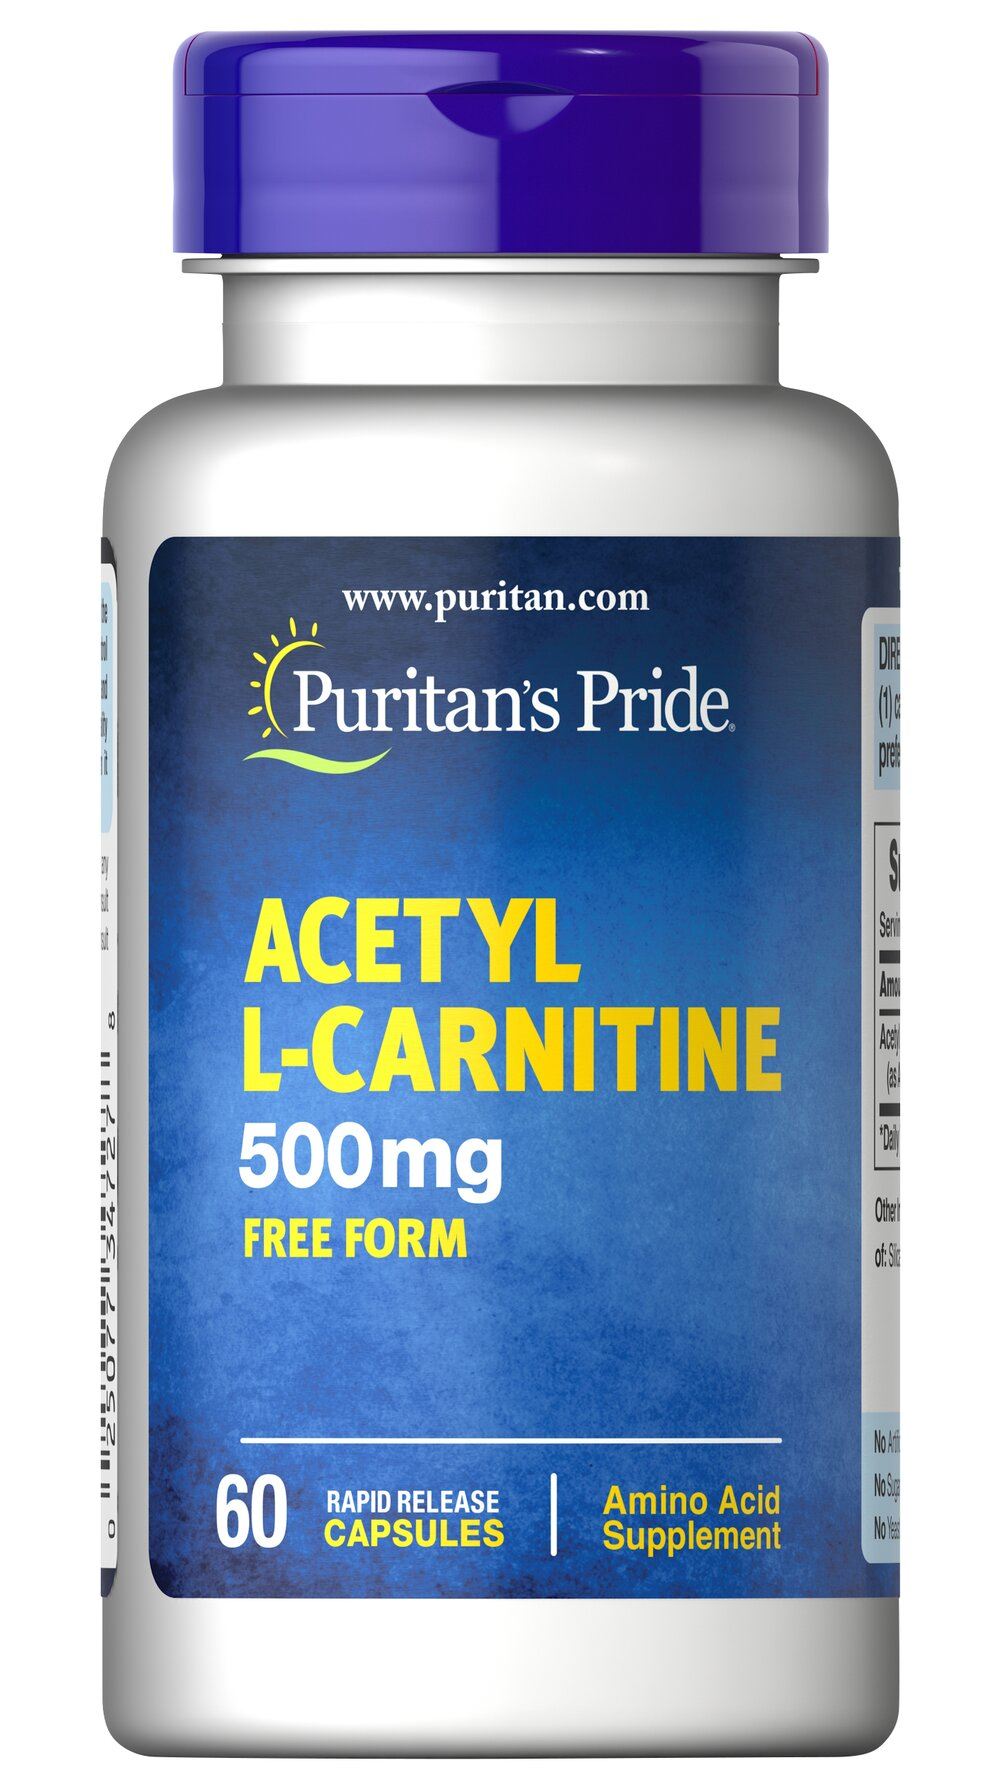 Acetyl L-Carnitine 500 mg <p>Acetyl L-Carnitine plays a role in the metabolism of food to energy.** Studies indicate that the combination of Alpha Lipoic Acid and Acetyl L-Carnitine helps promote metabolic functioning to fight against free radicals and oxidative stress.**</p>  60 Capsules 500 mg $15.99